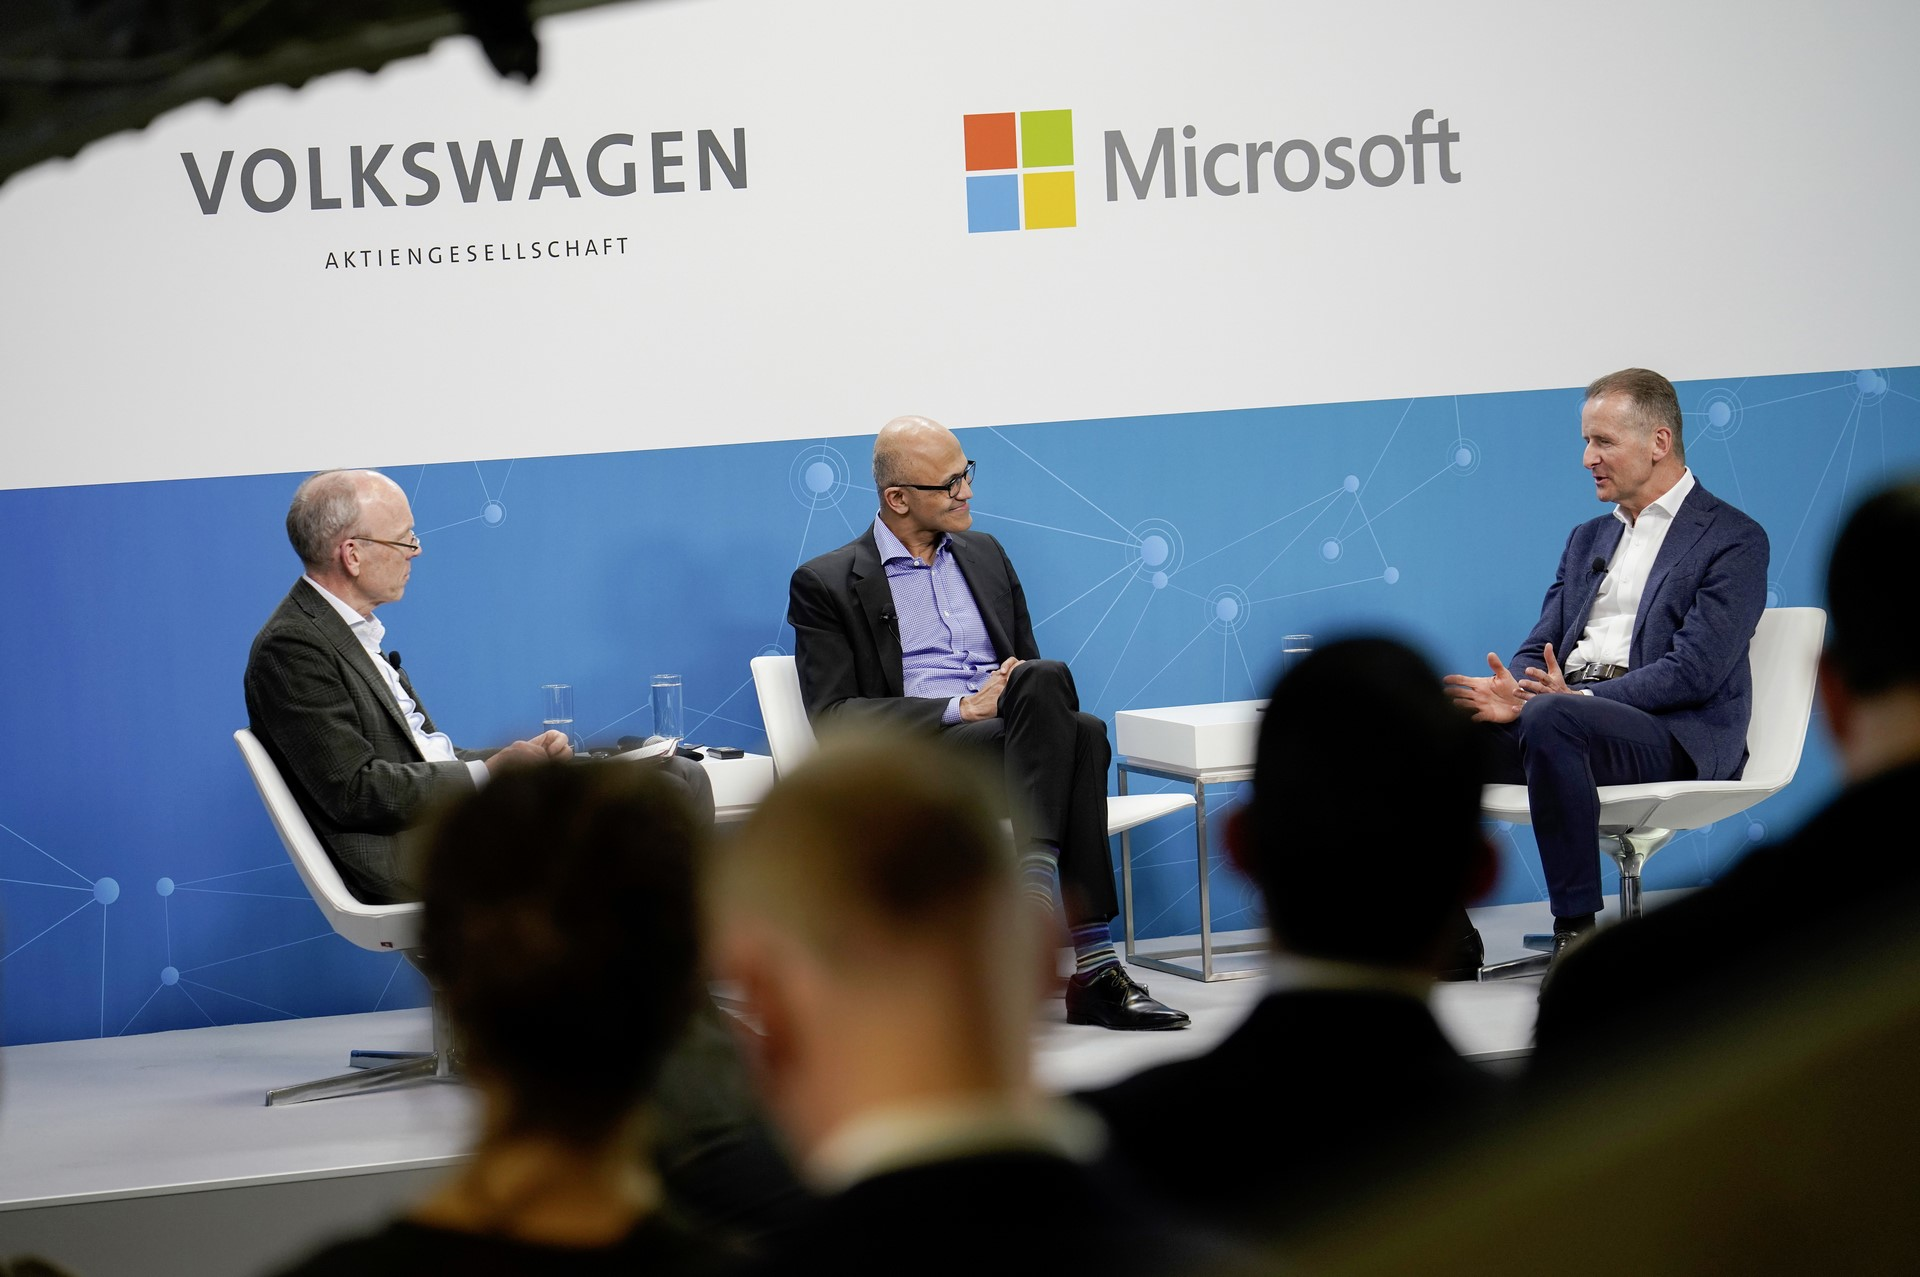 Volkswagen and Microsoft share progress on strategic partnership